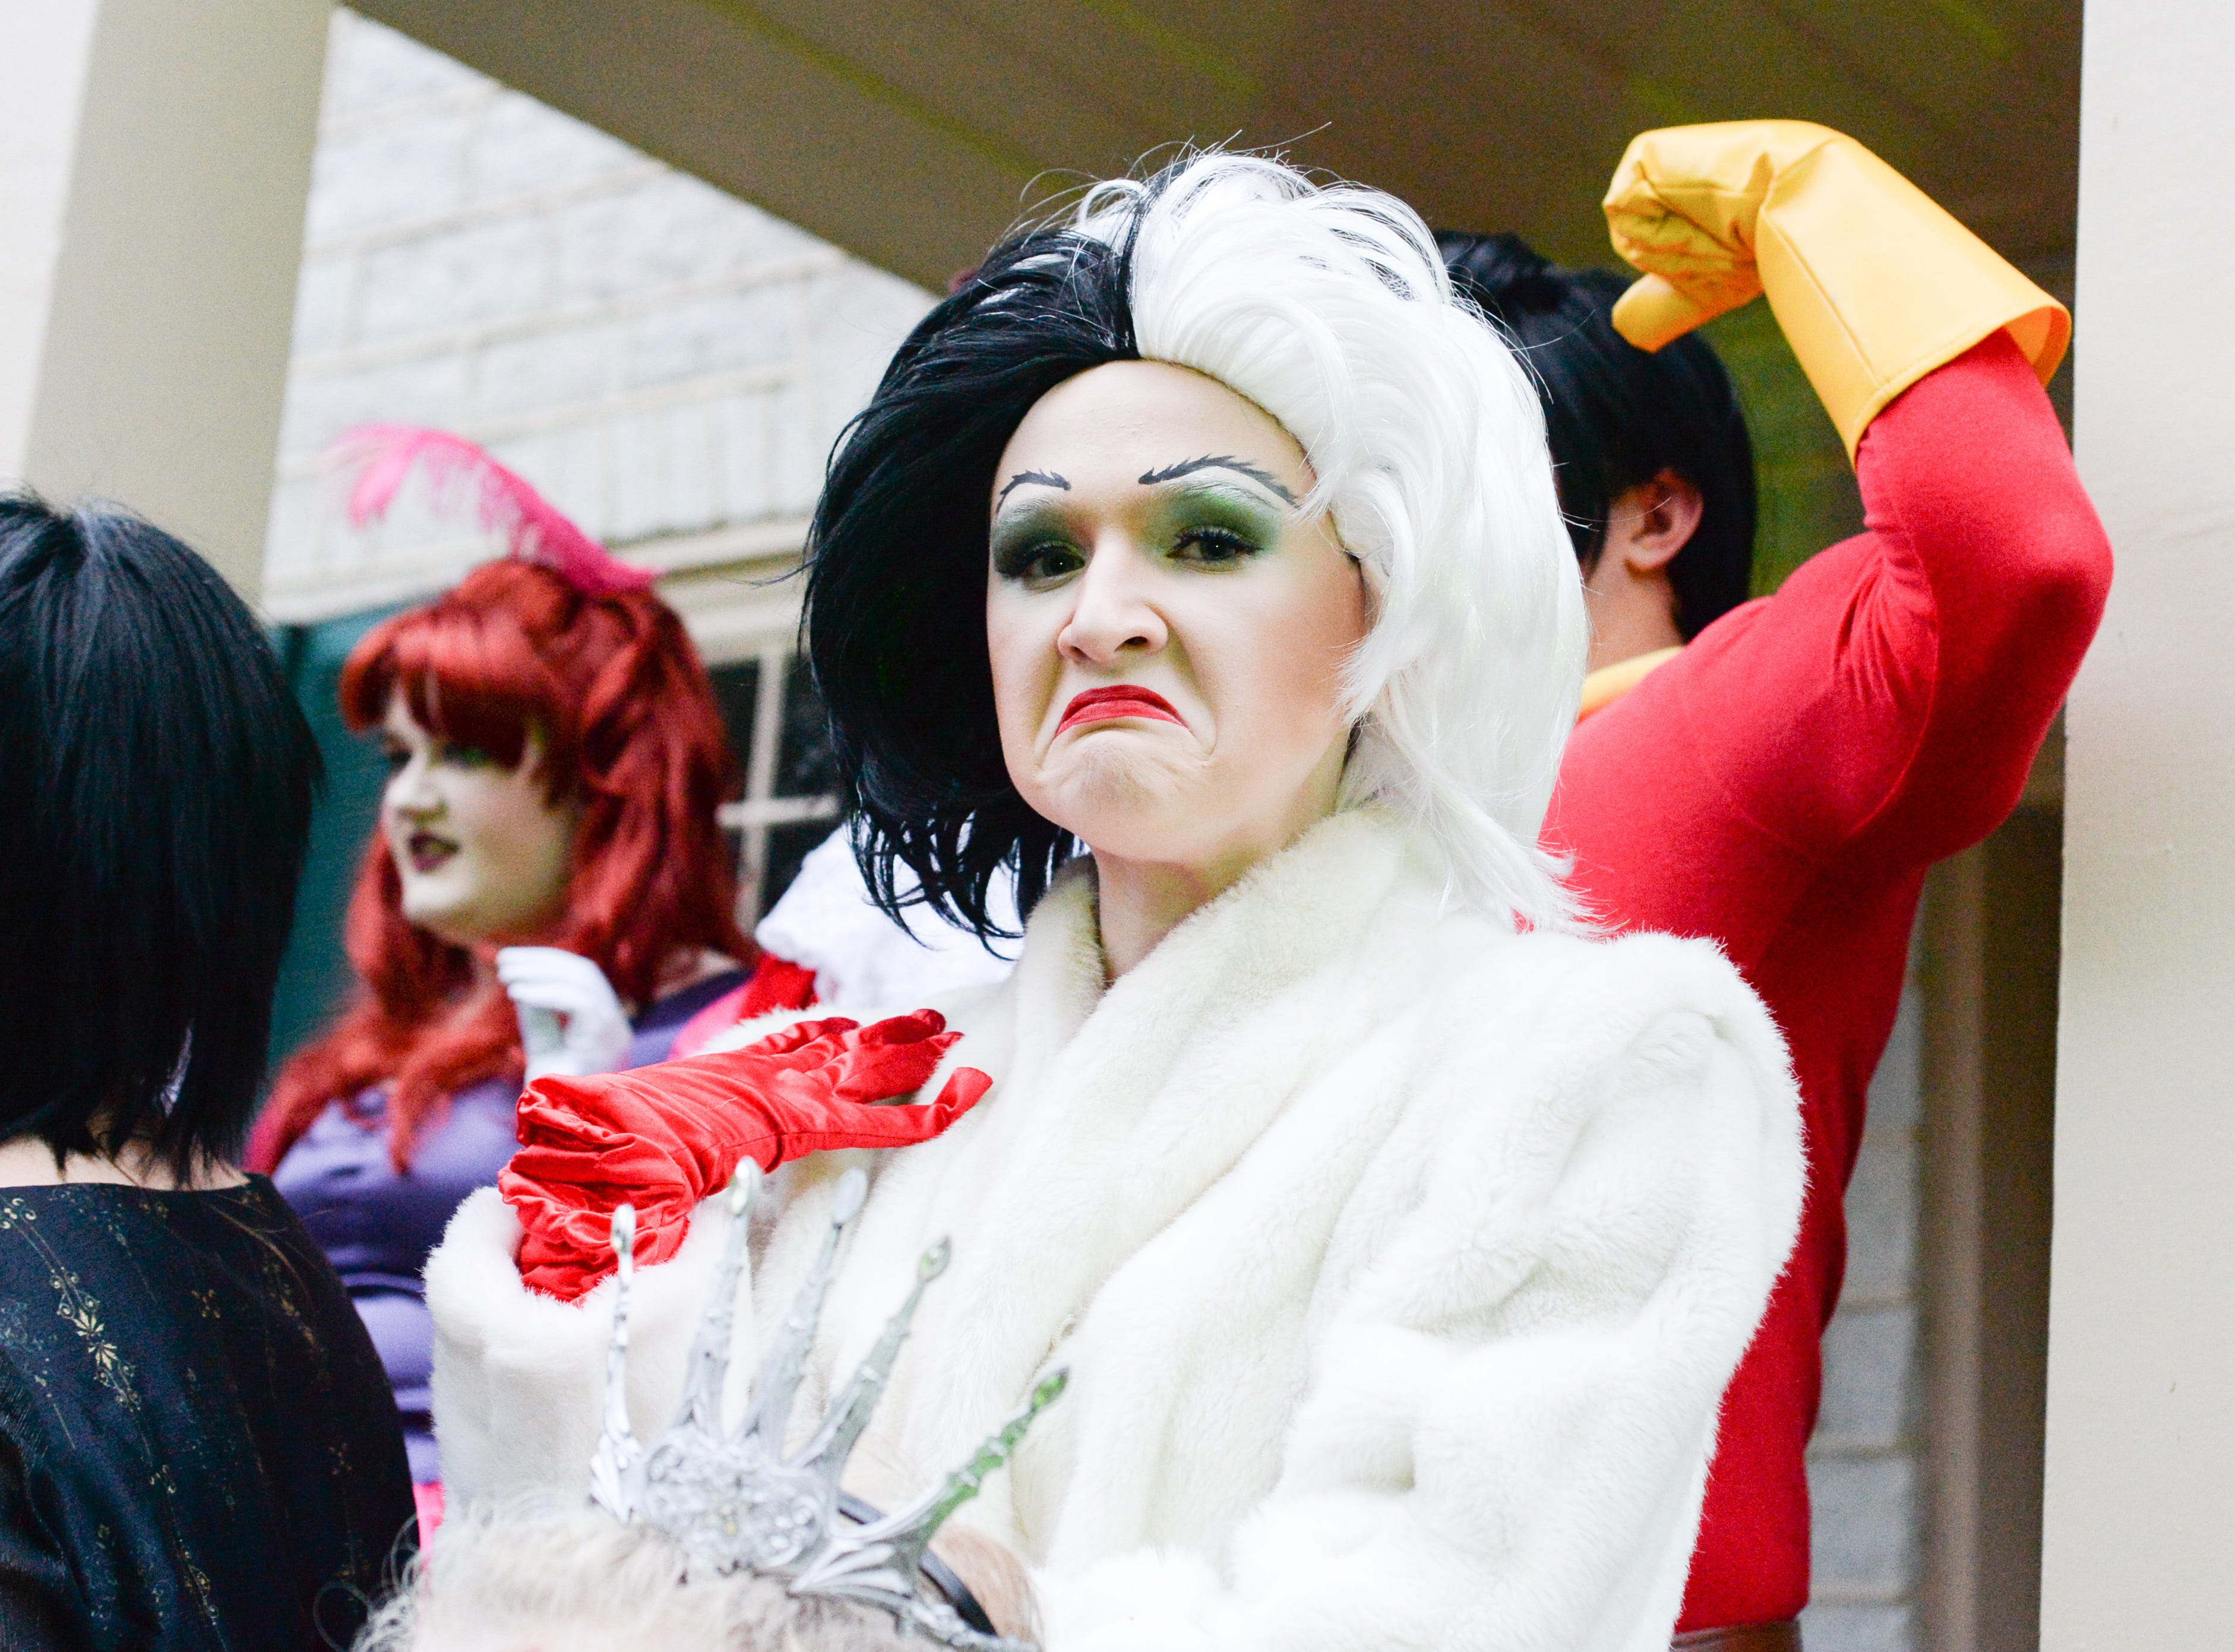 Participants stay fully in character during the Castle of Villains trick or treating event at Historic Rock Castle in Hendersonville on Friday, Oct. 26.